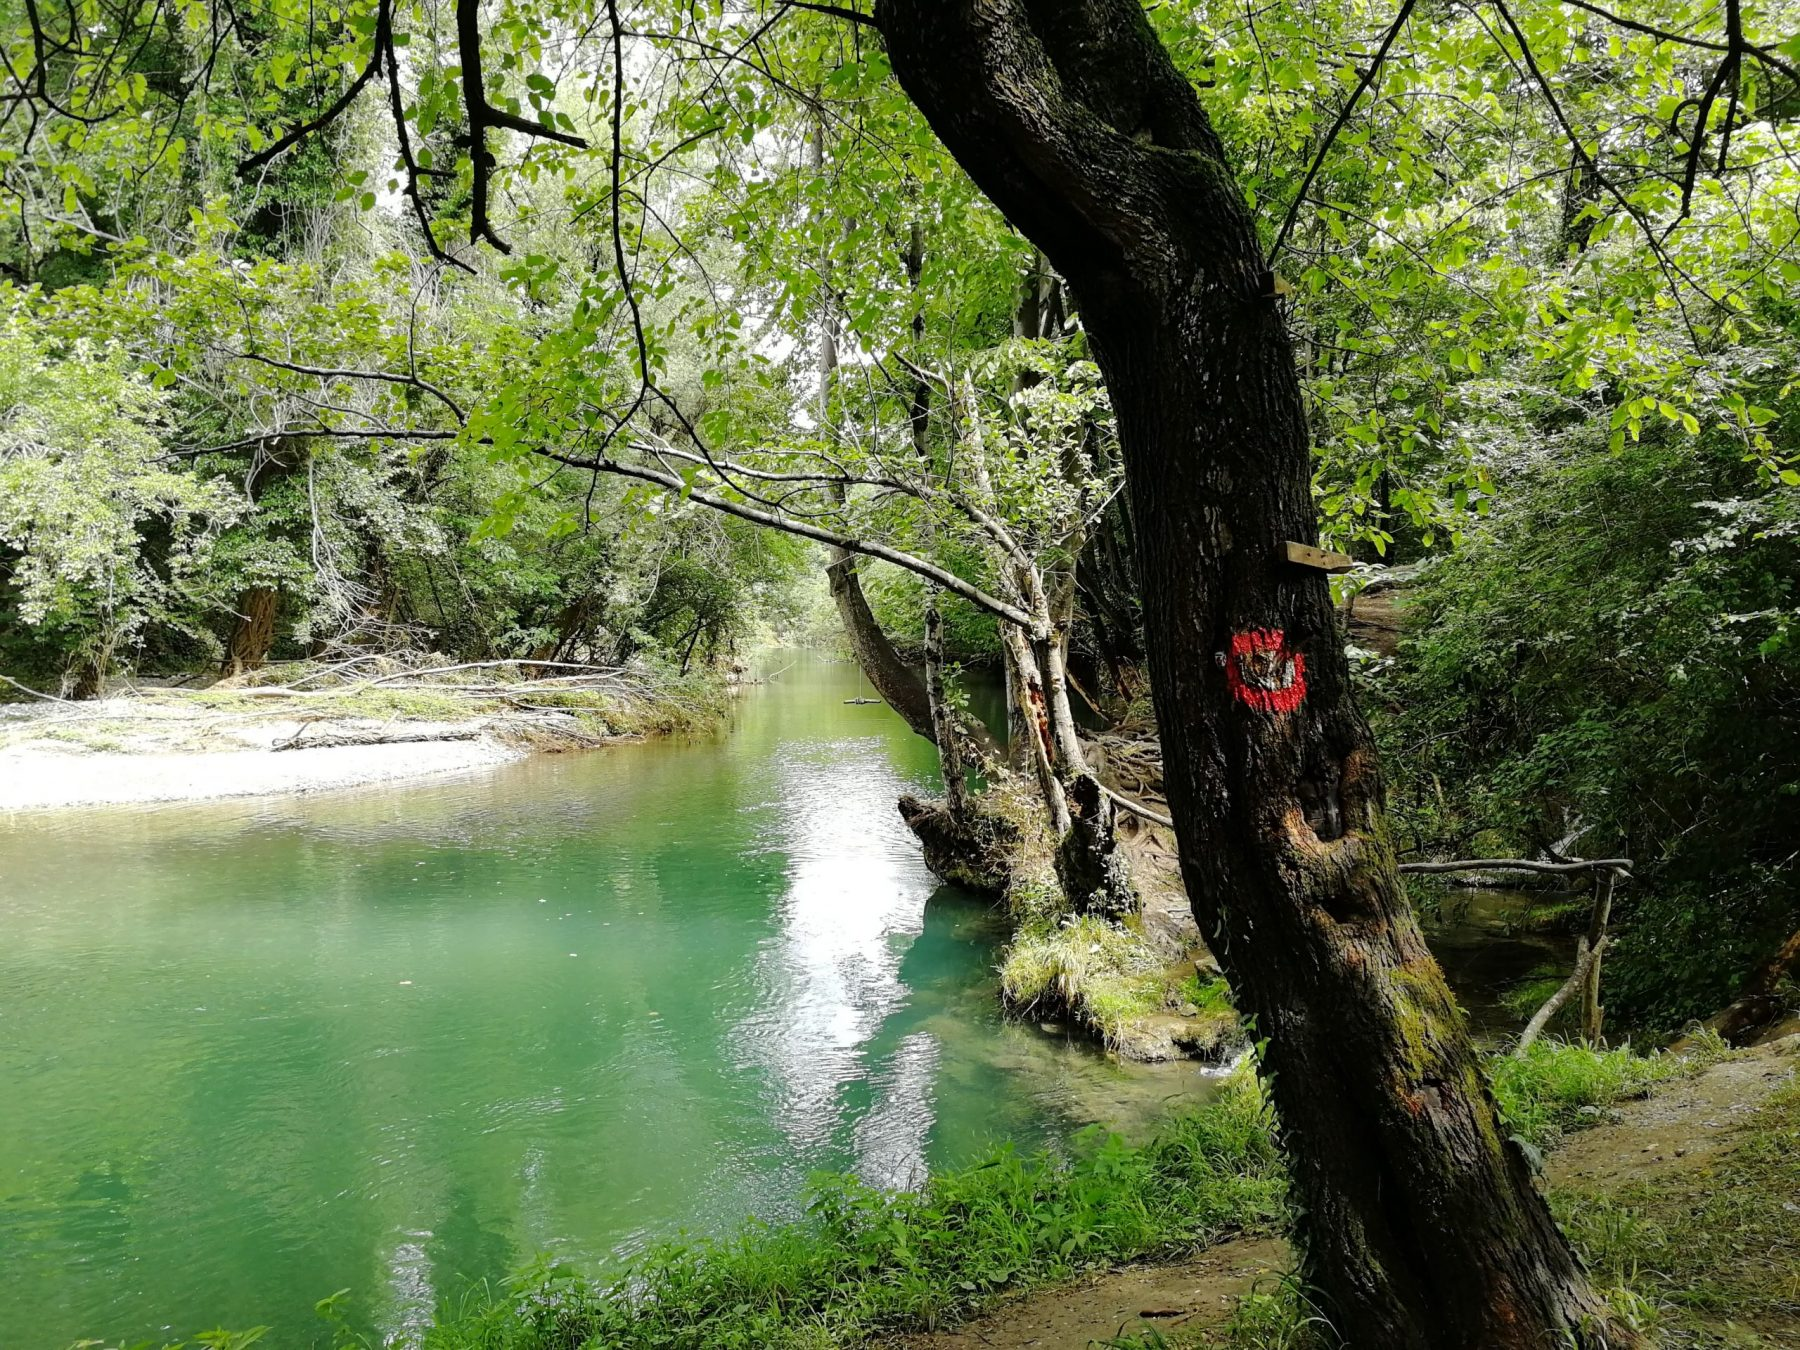 Ribnica and the gorge of the river Gradac